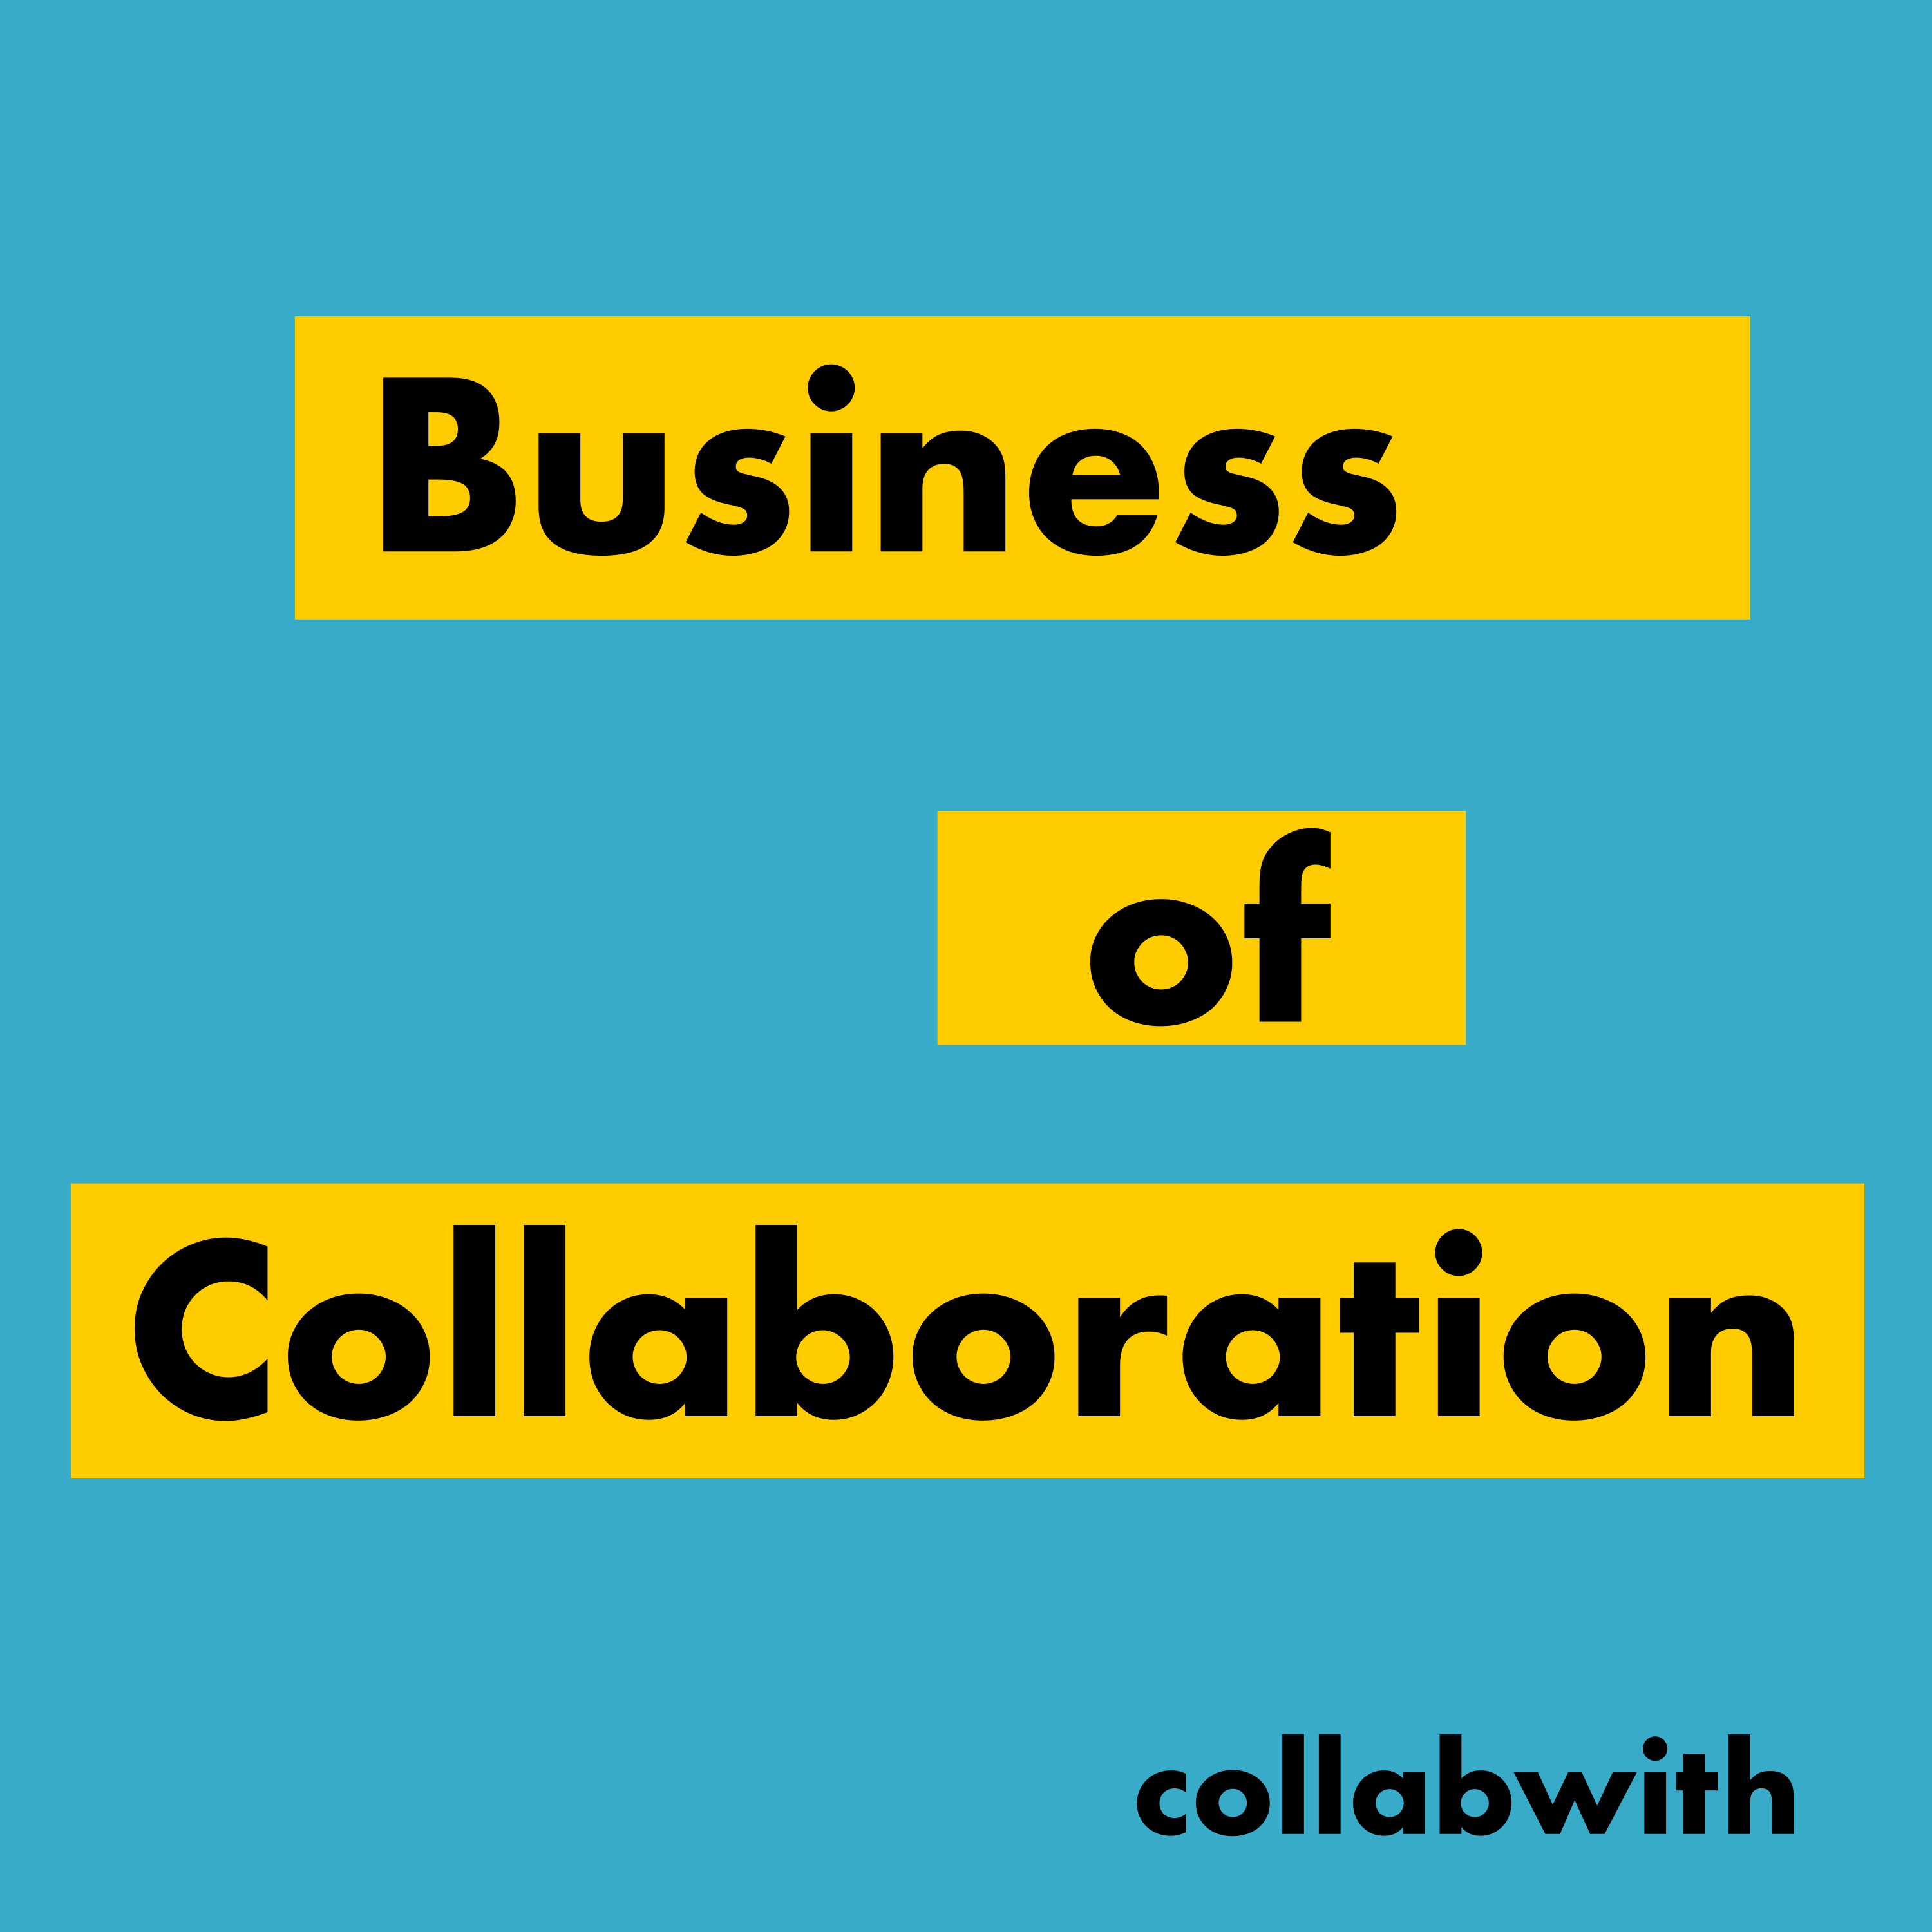 Business of Collaboration